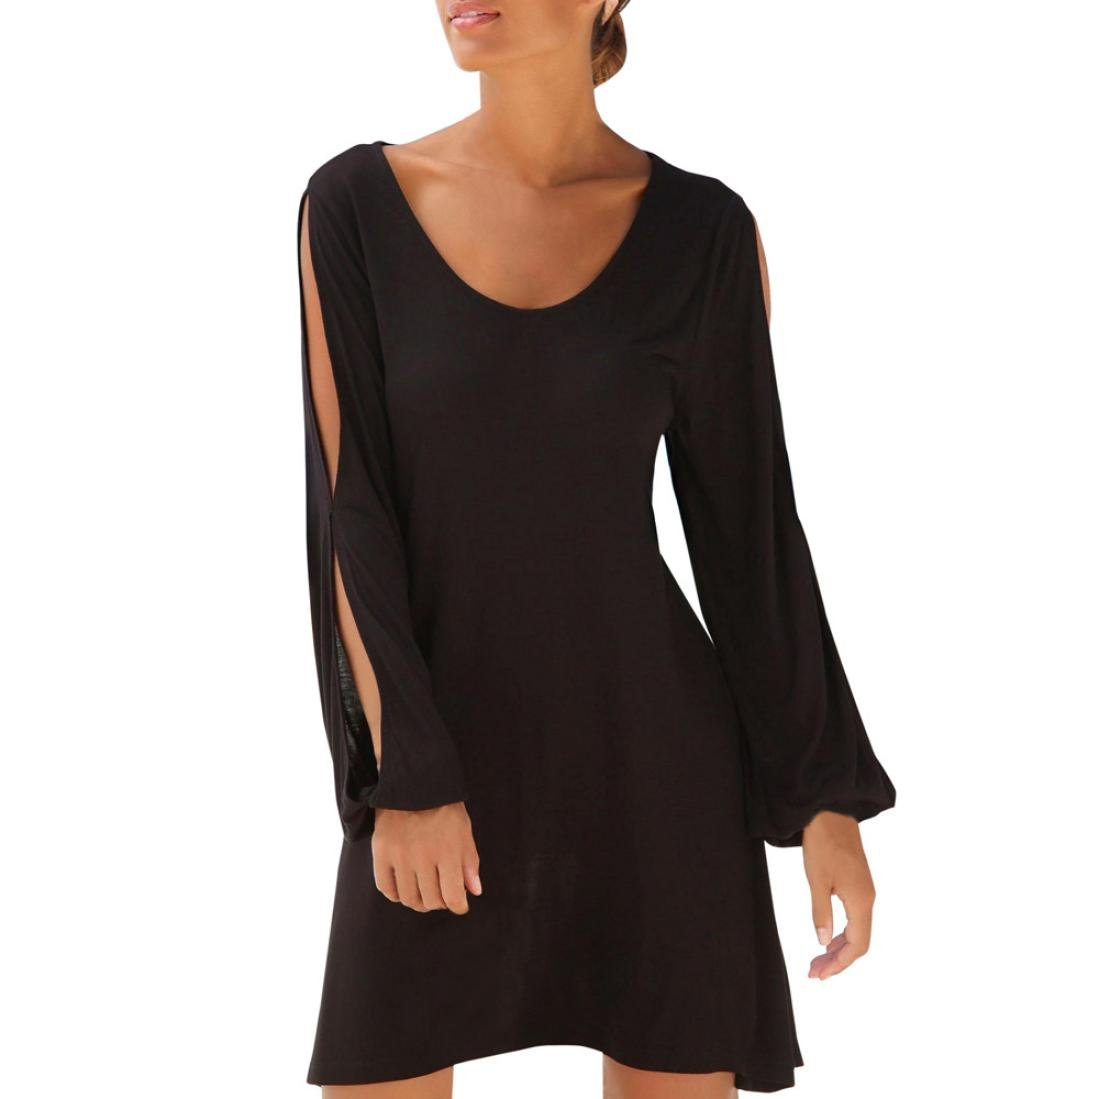 Fashion Women's Mini Dress, Casual O-Neck Hollow Out Sleeve Solid Beach Style Long Dresses